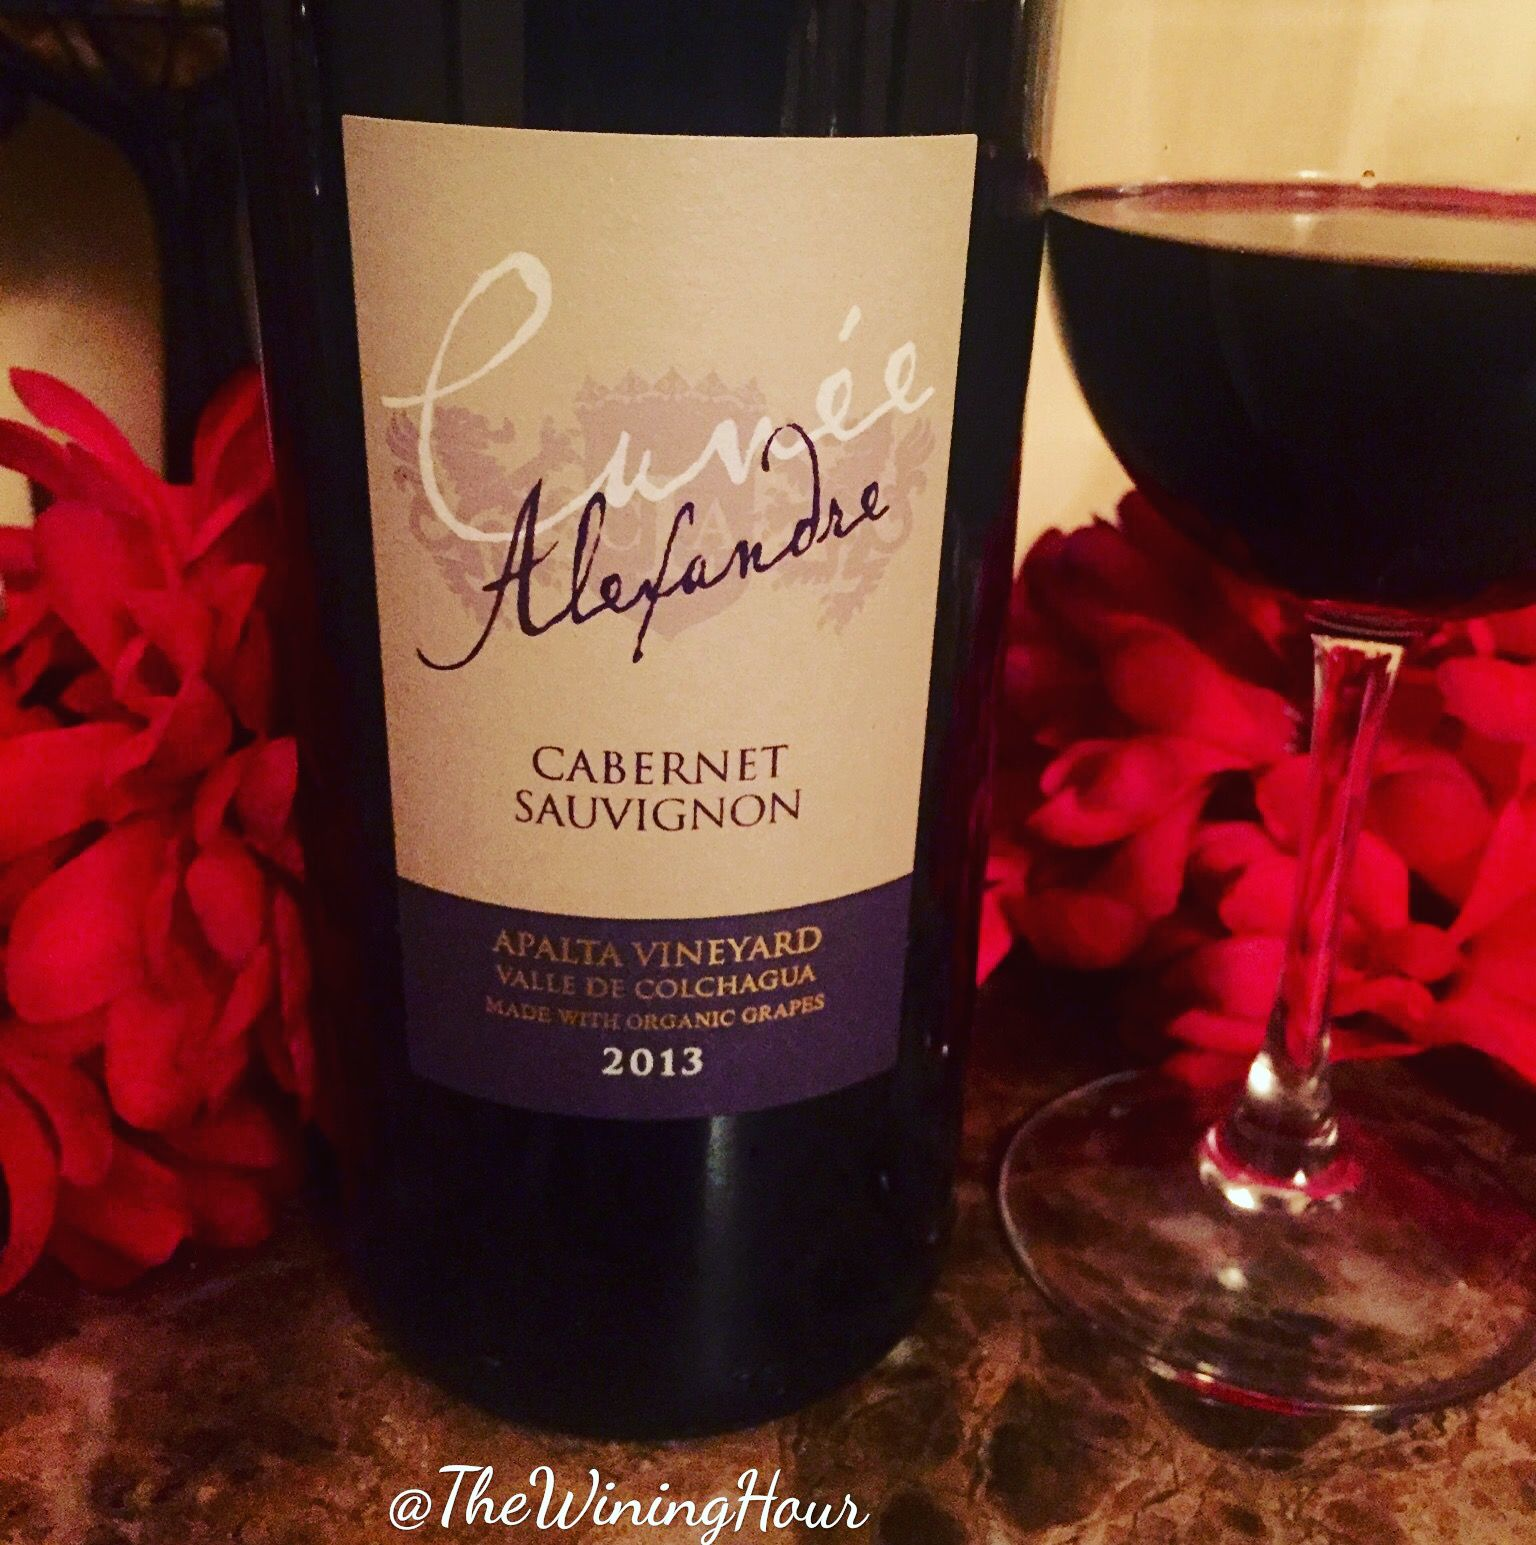 Wininghourchat Selection Lapostolle Cabernetsauvignon Cuvee Alexandre Winesofchile Tipsytuesday Awesome Blend Of Wine Lovers Wine Bottle Different Wines